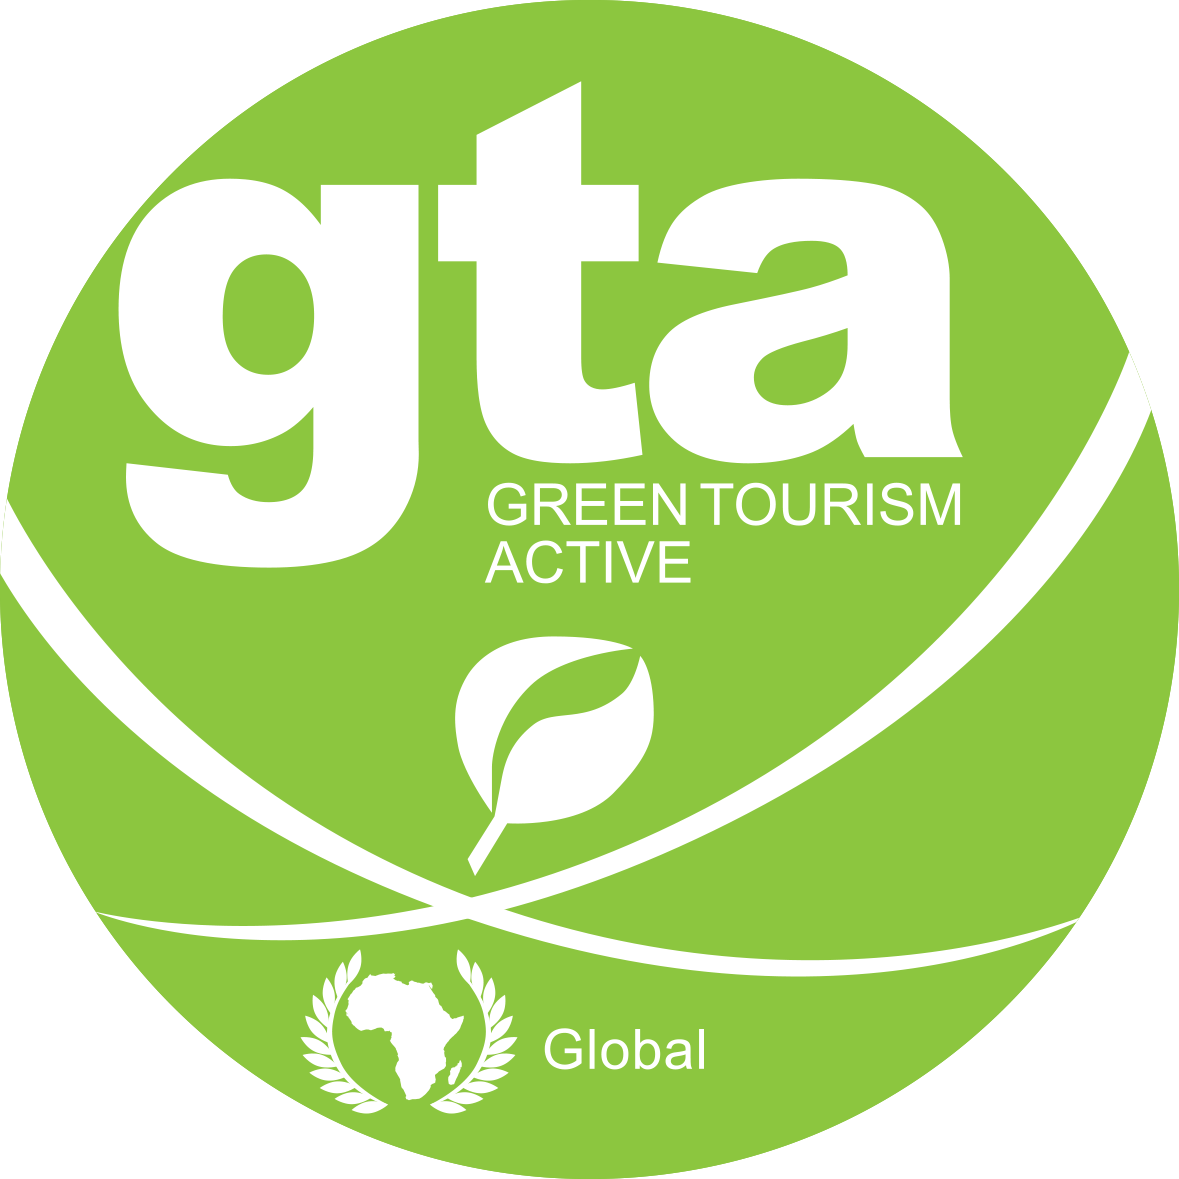 Green Tourism Active, Cape Town, South Africa